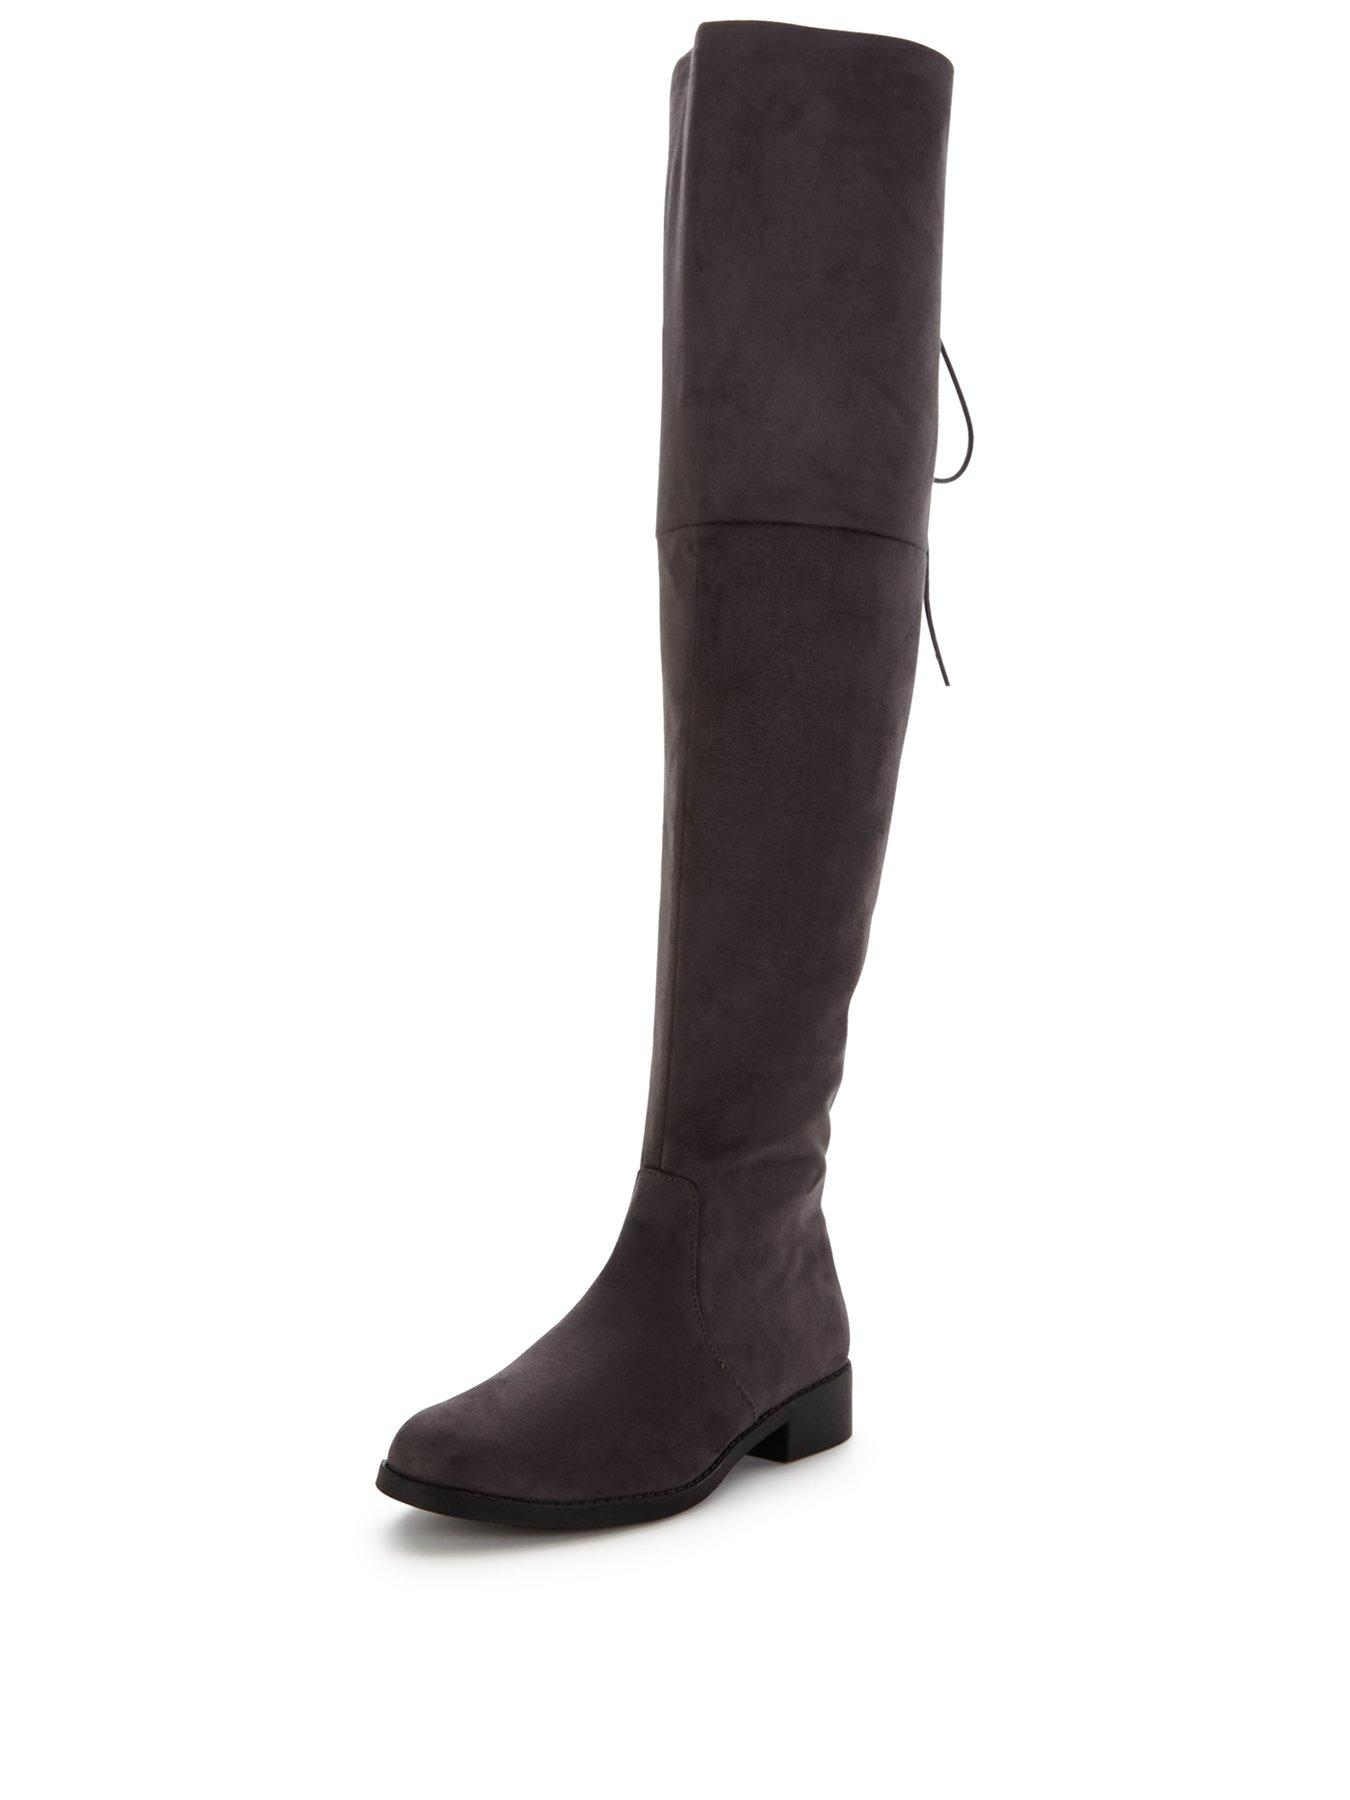 V by Very Lacey Tie Back Over The Knee Boot - Grey